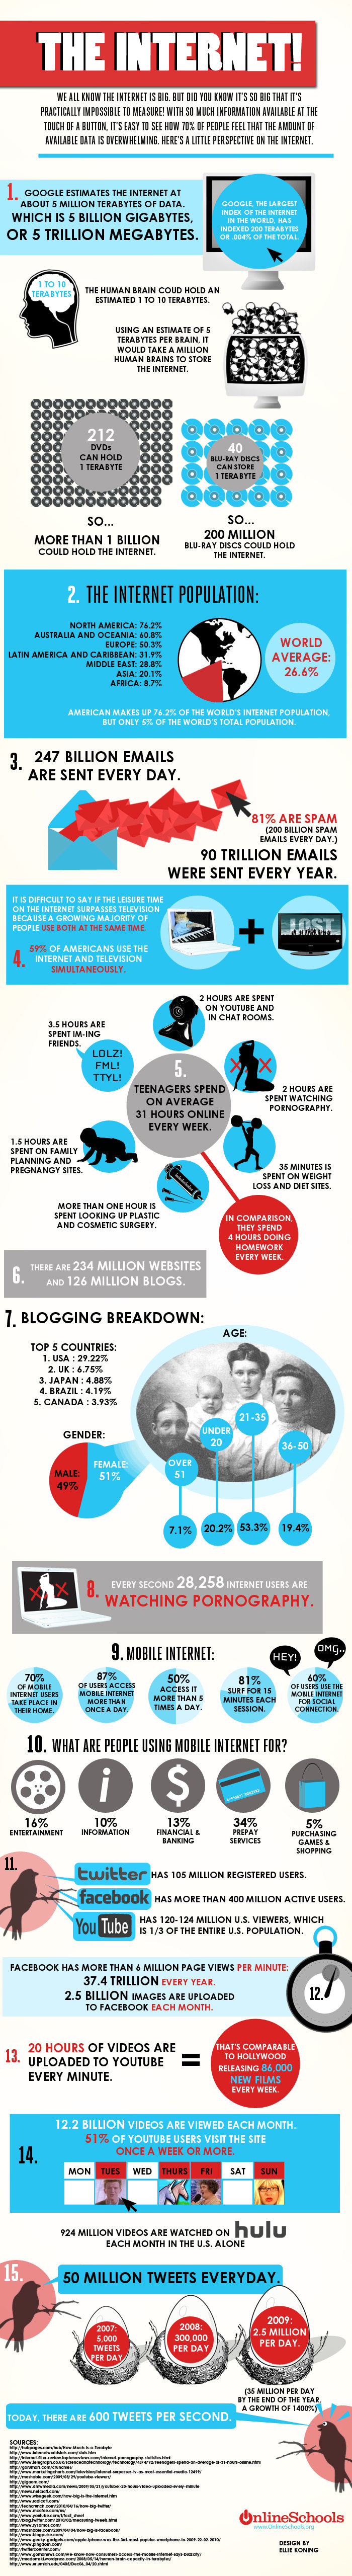 the internet - facts about the internet